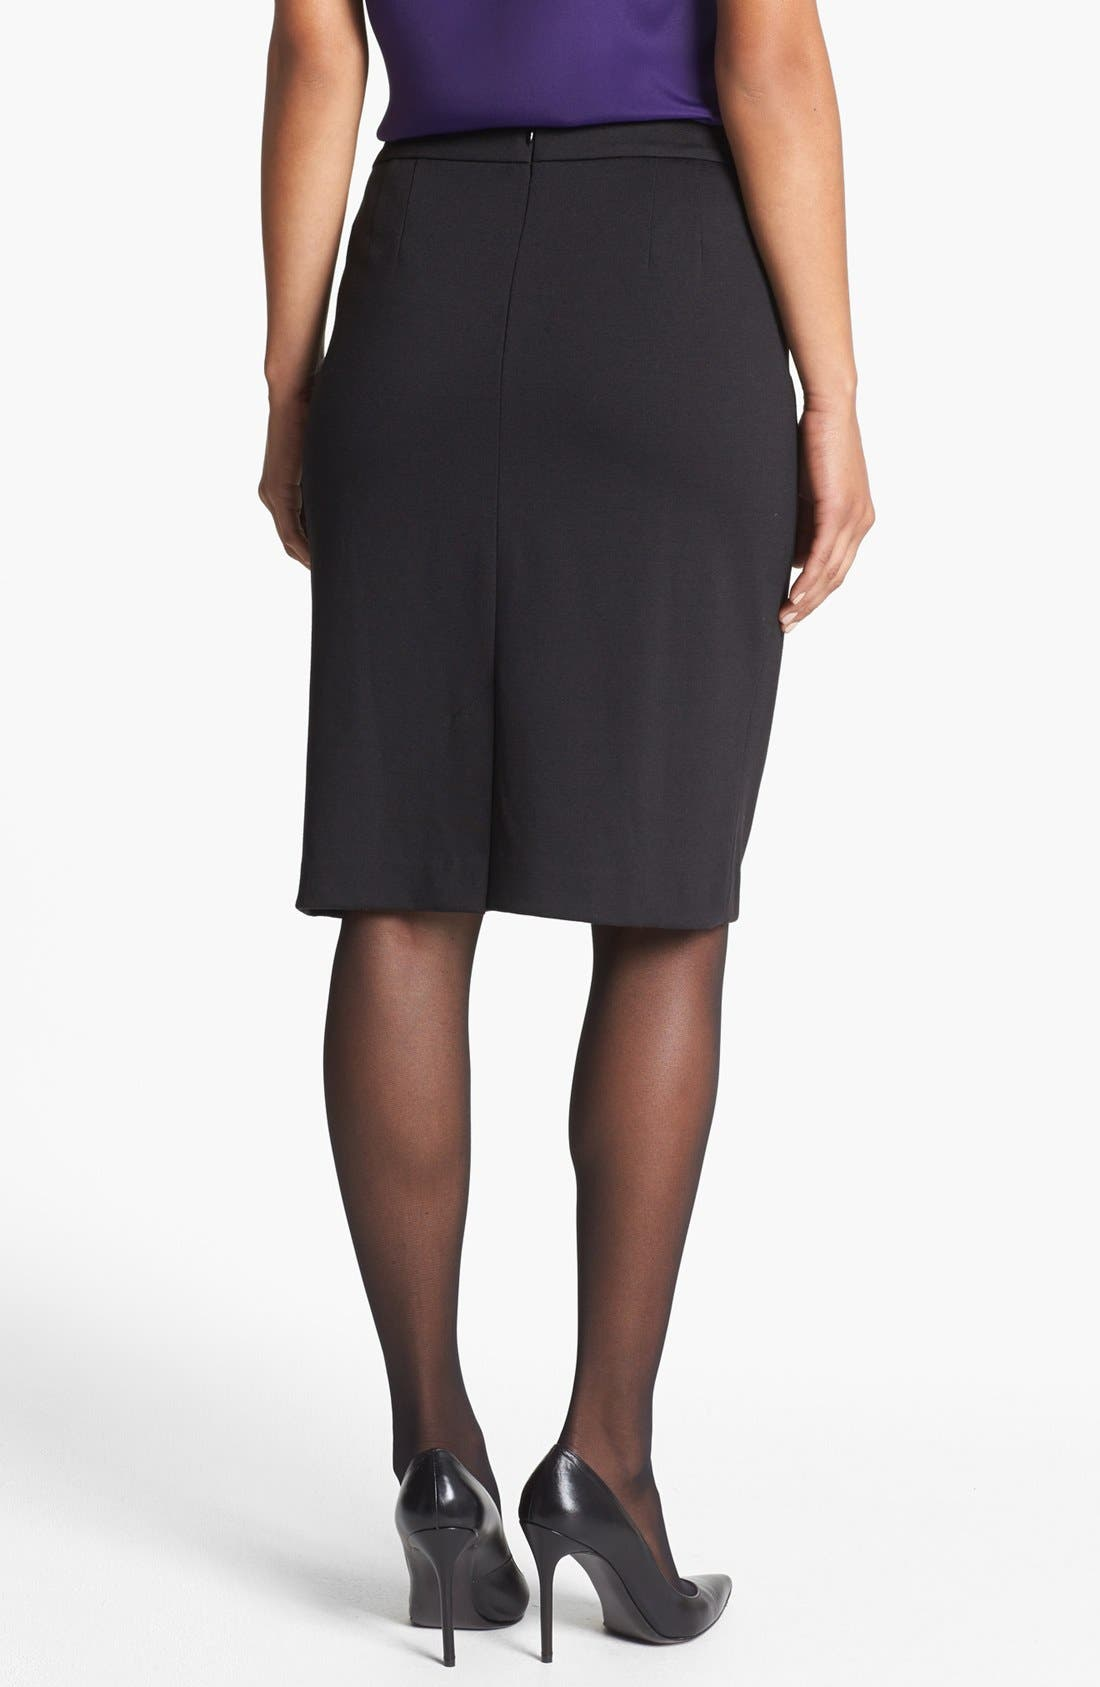 JONES NEW YORK,                             'Lucy' Ponte Knit Pencil Skirt,                             Alternate thumbnail 2, color,                             001